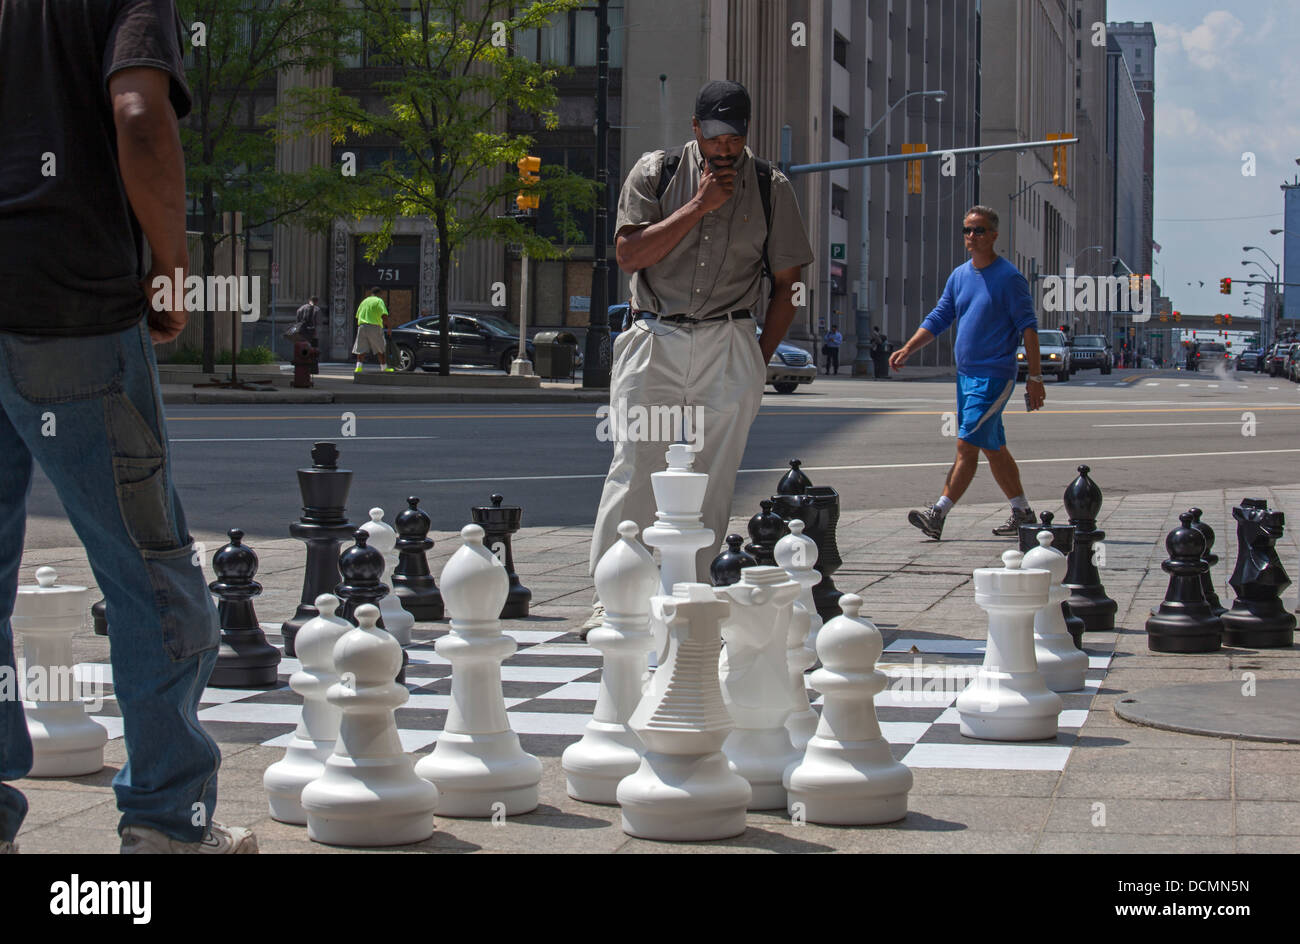 Detroit, Michigan - Two men play chess on a sidewalk chessboard in downtown Detroit. - Stock Image